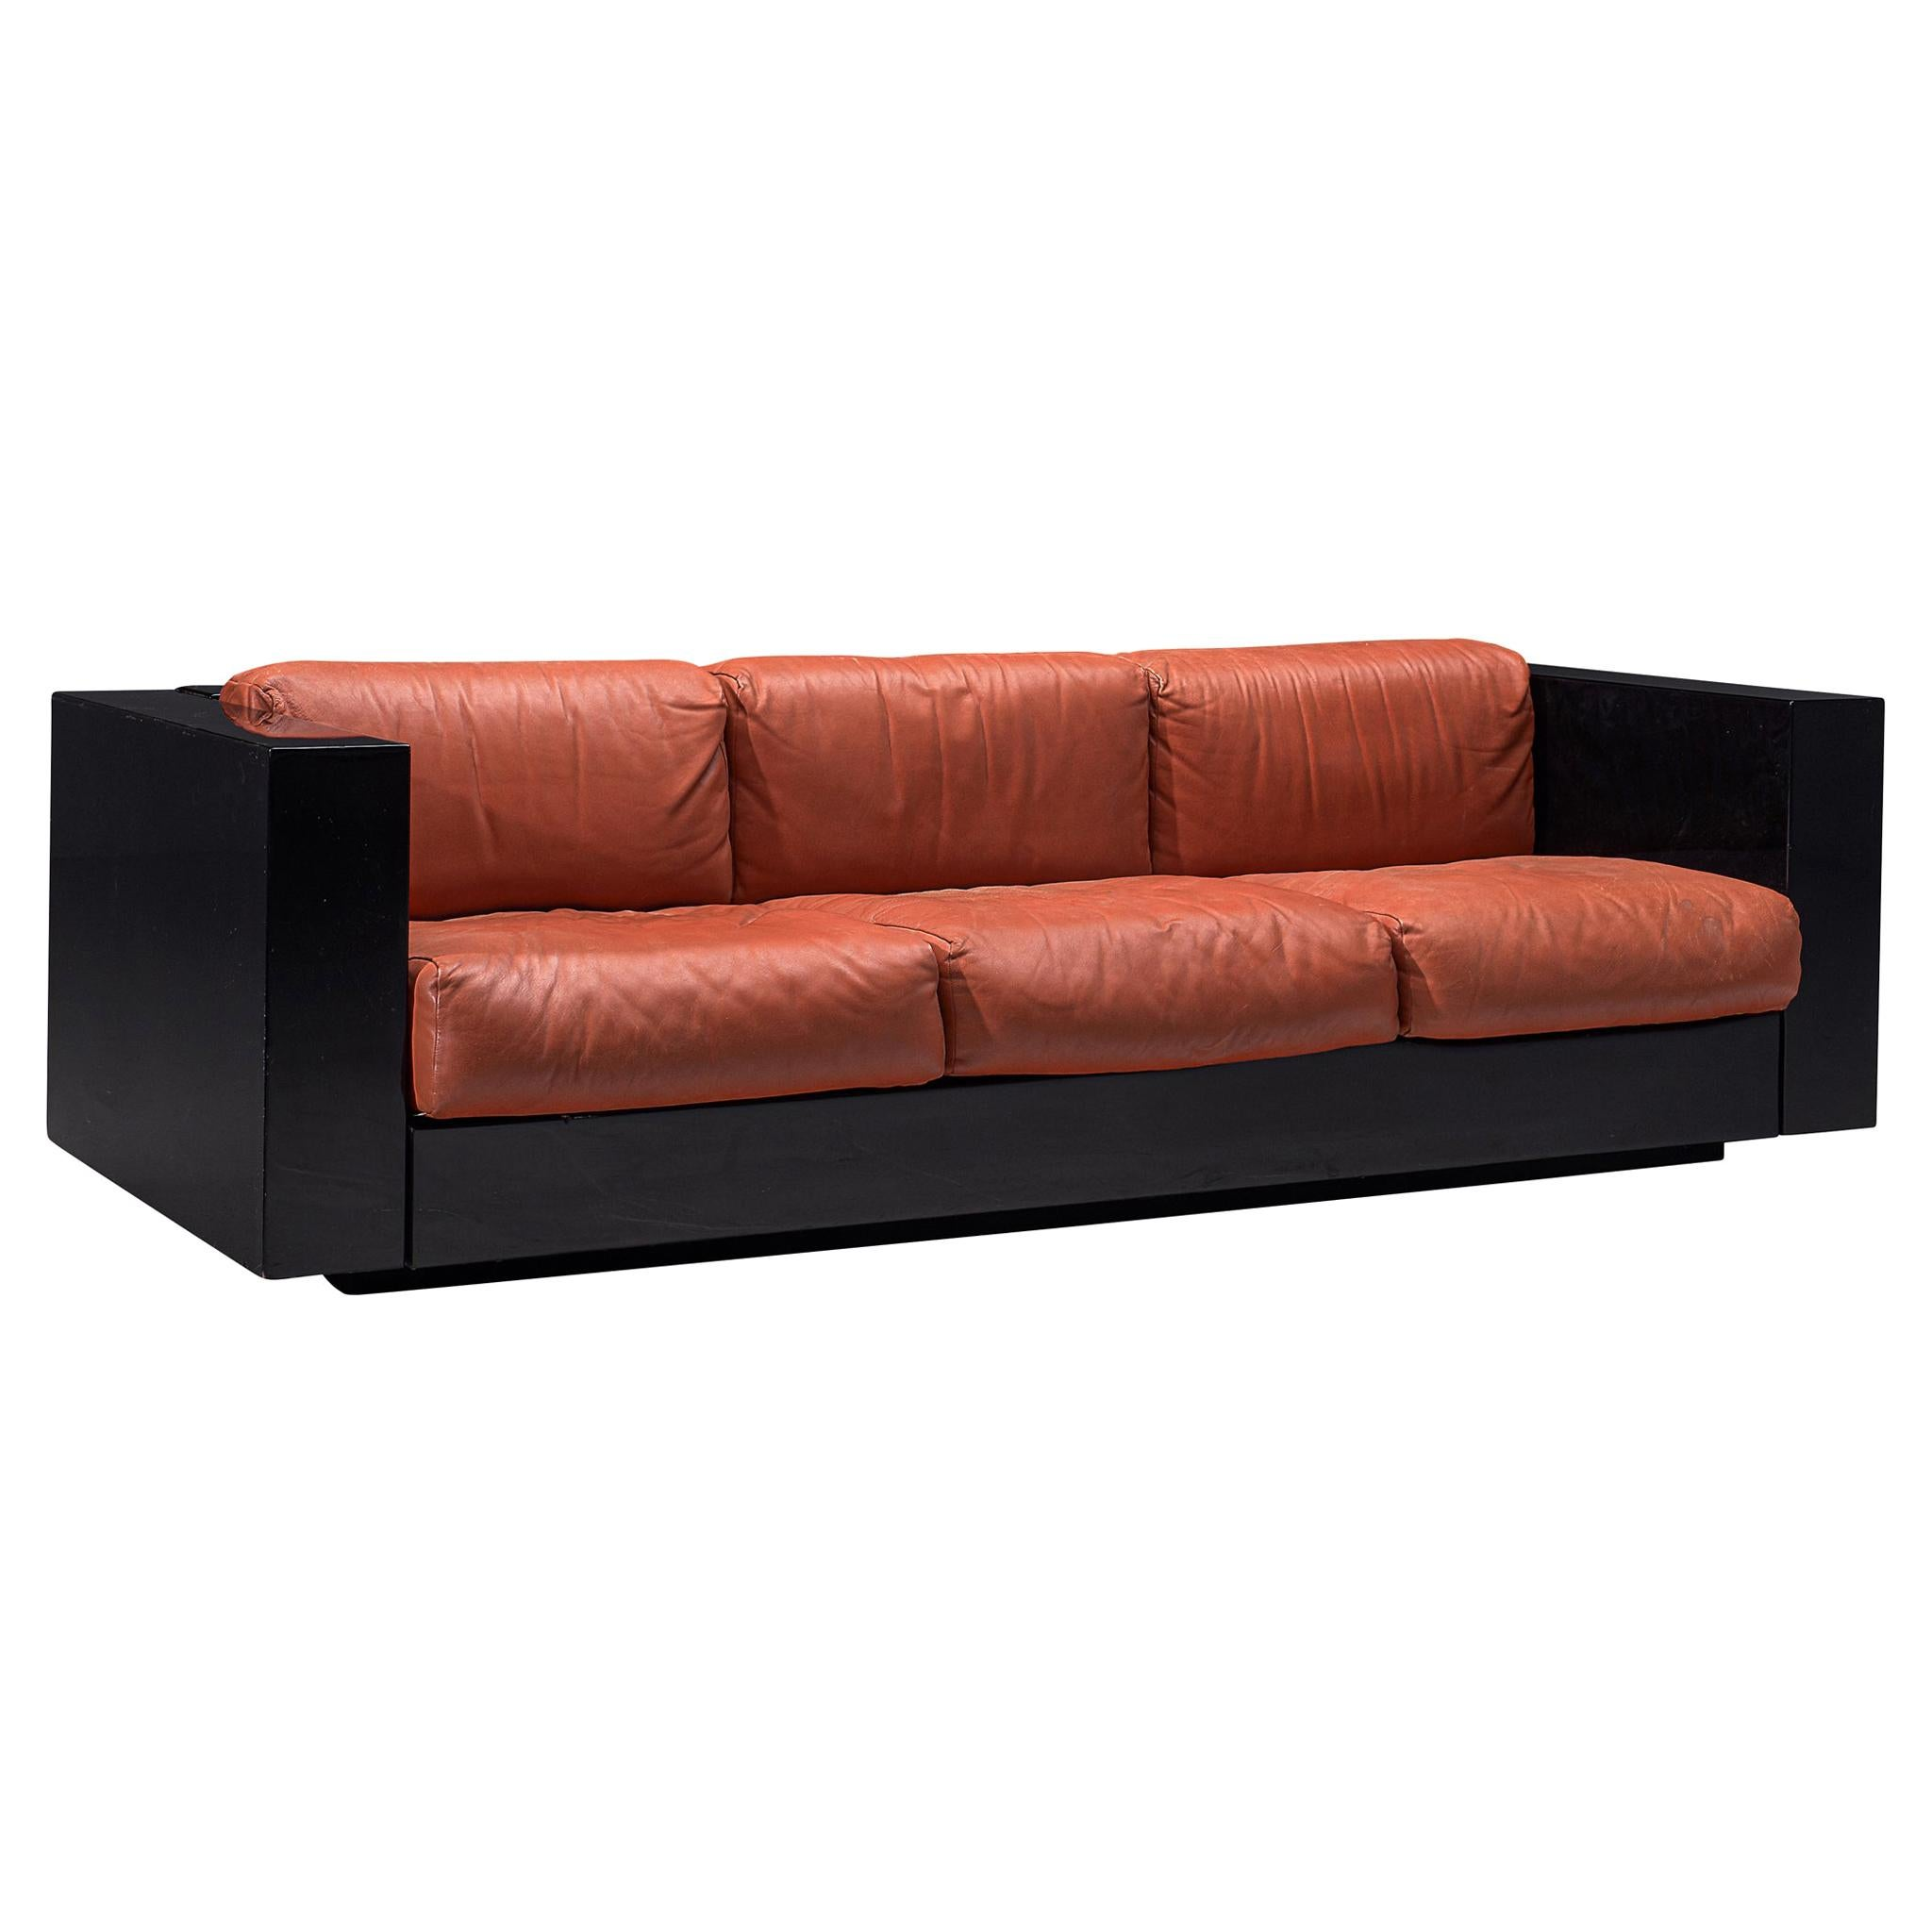 Vignelli Saratoga Large Black Sofa with Red Leather